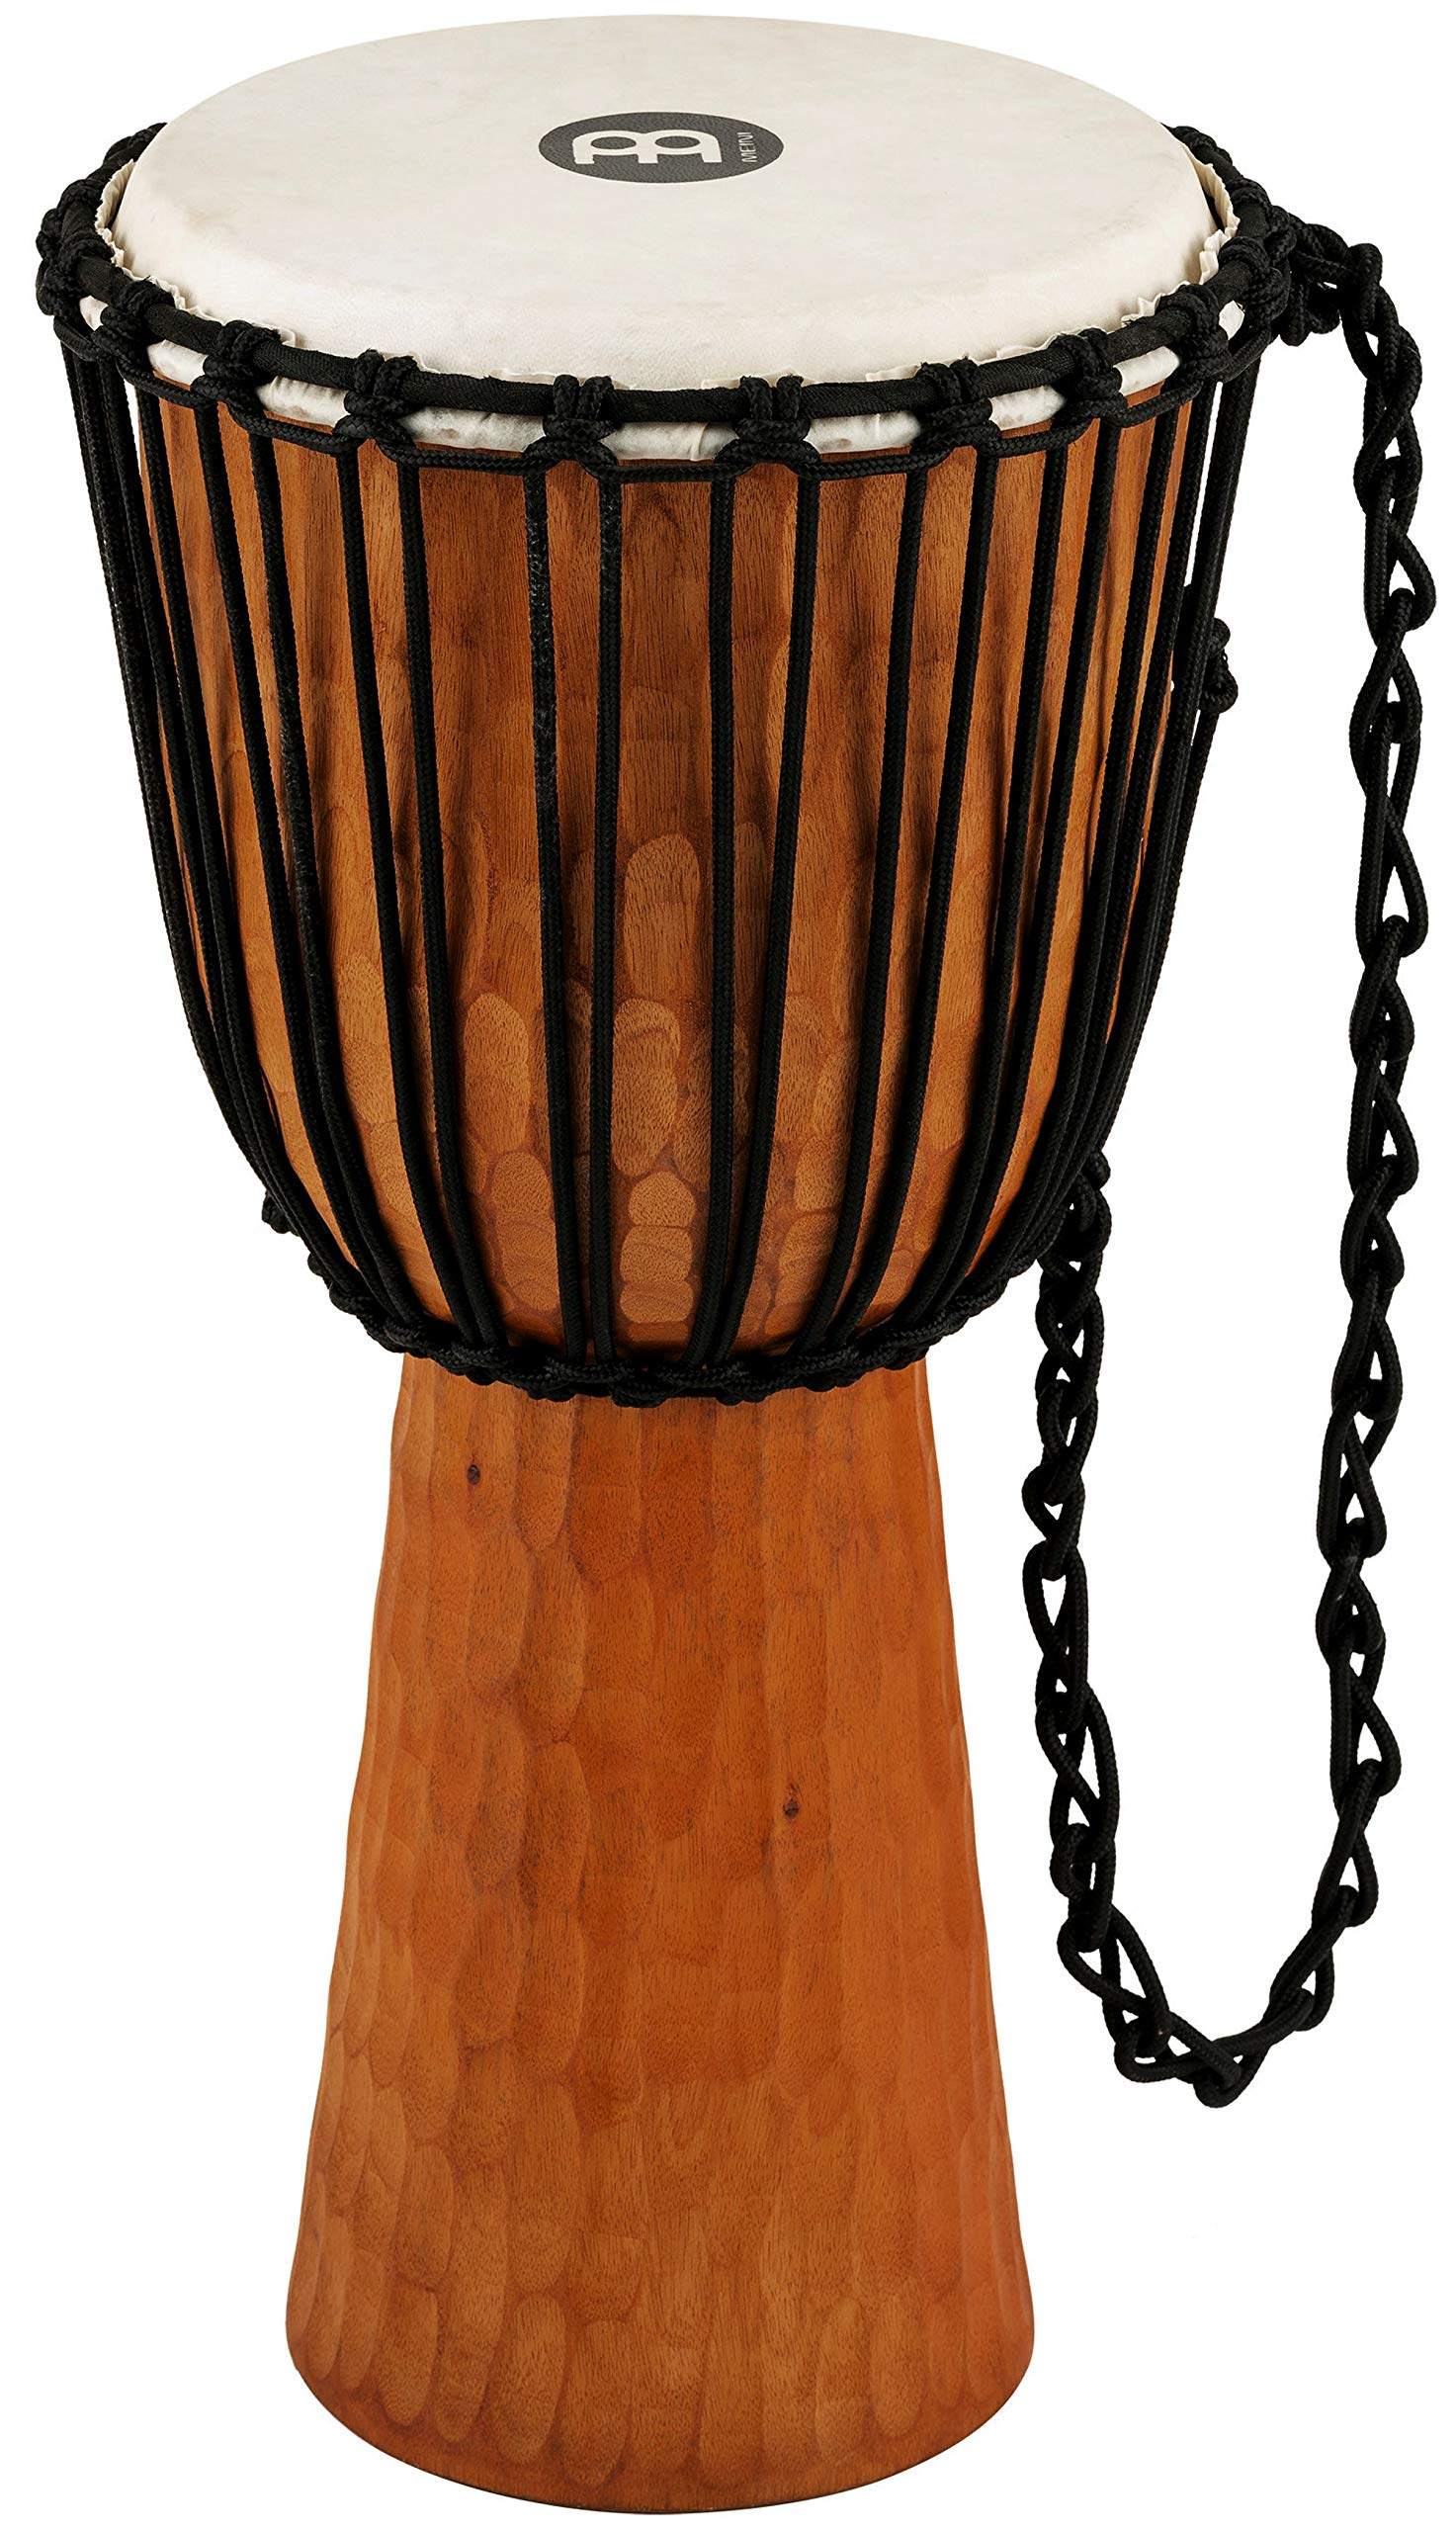 Meinl Percussion Djembe with Mahogany Wood-NOT Made in CHINA-12 Large Size Rope Tuned Goat Skin Head, 2-Year Warranty, Brown, 12'' (HDJ4-L)